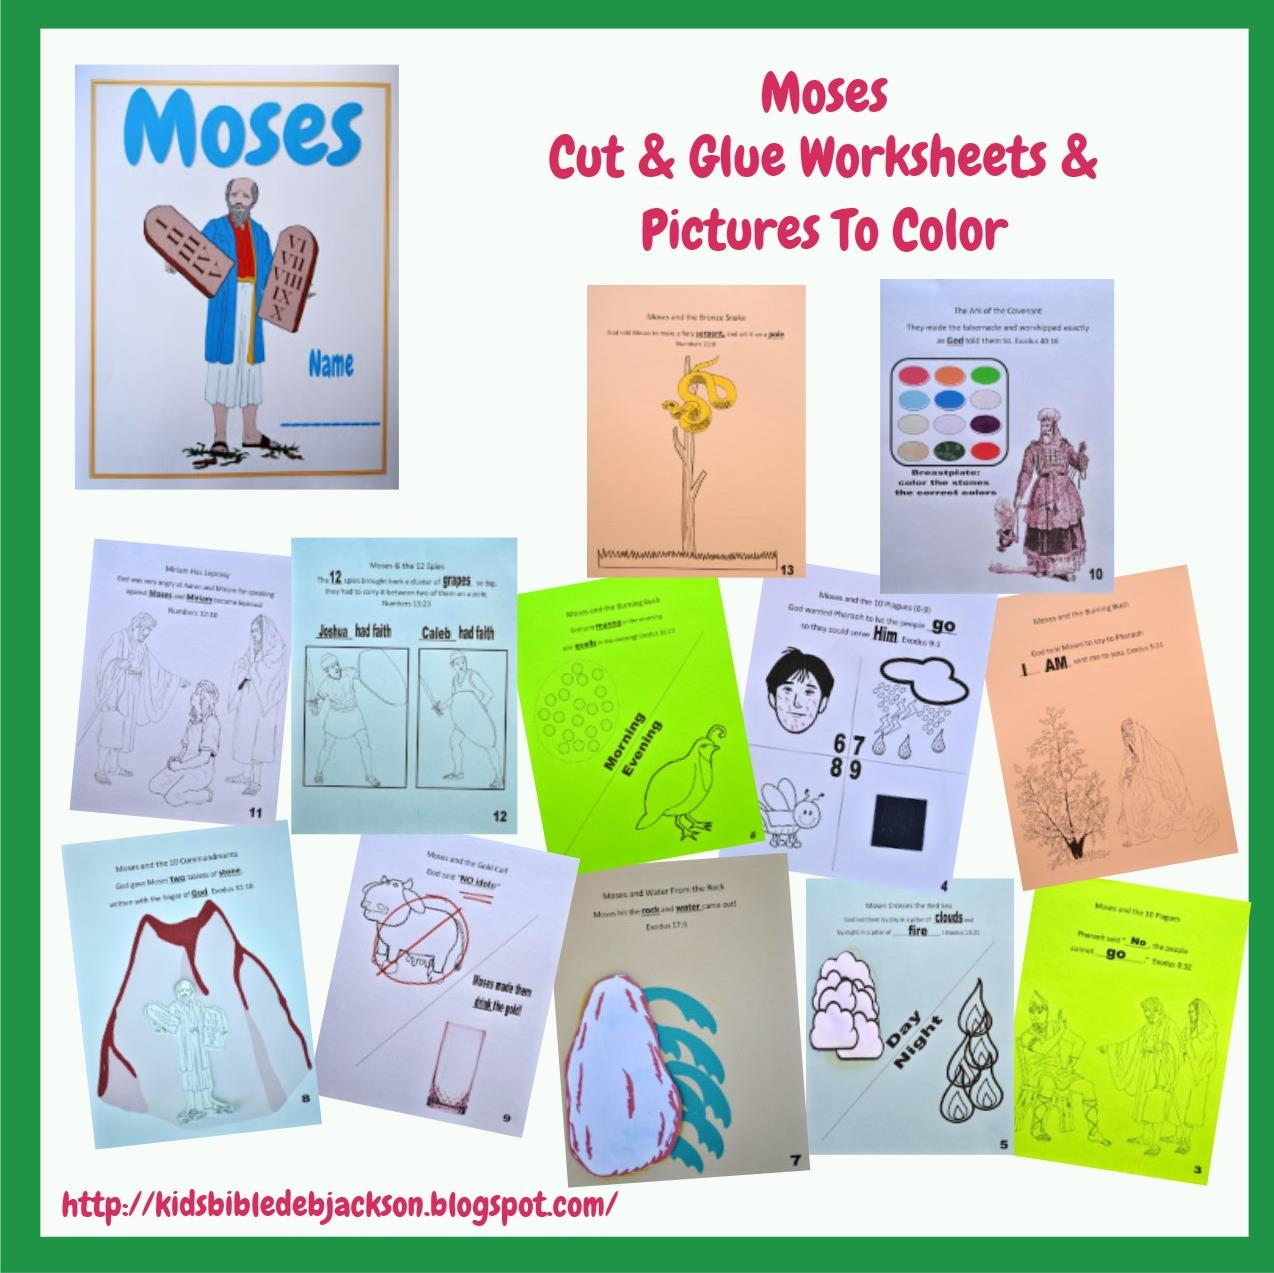 http://kidsbibledebjackson.blogspot.com/2013/08/moses-cut-glue-and-pictures-to-color.html